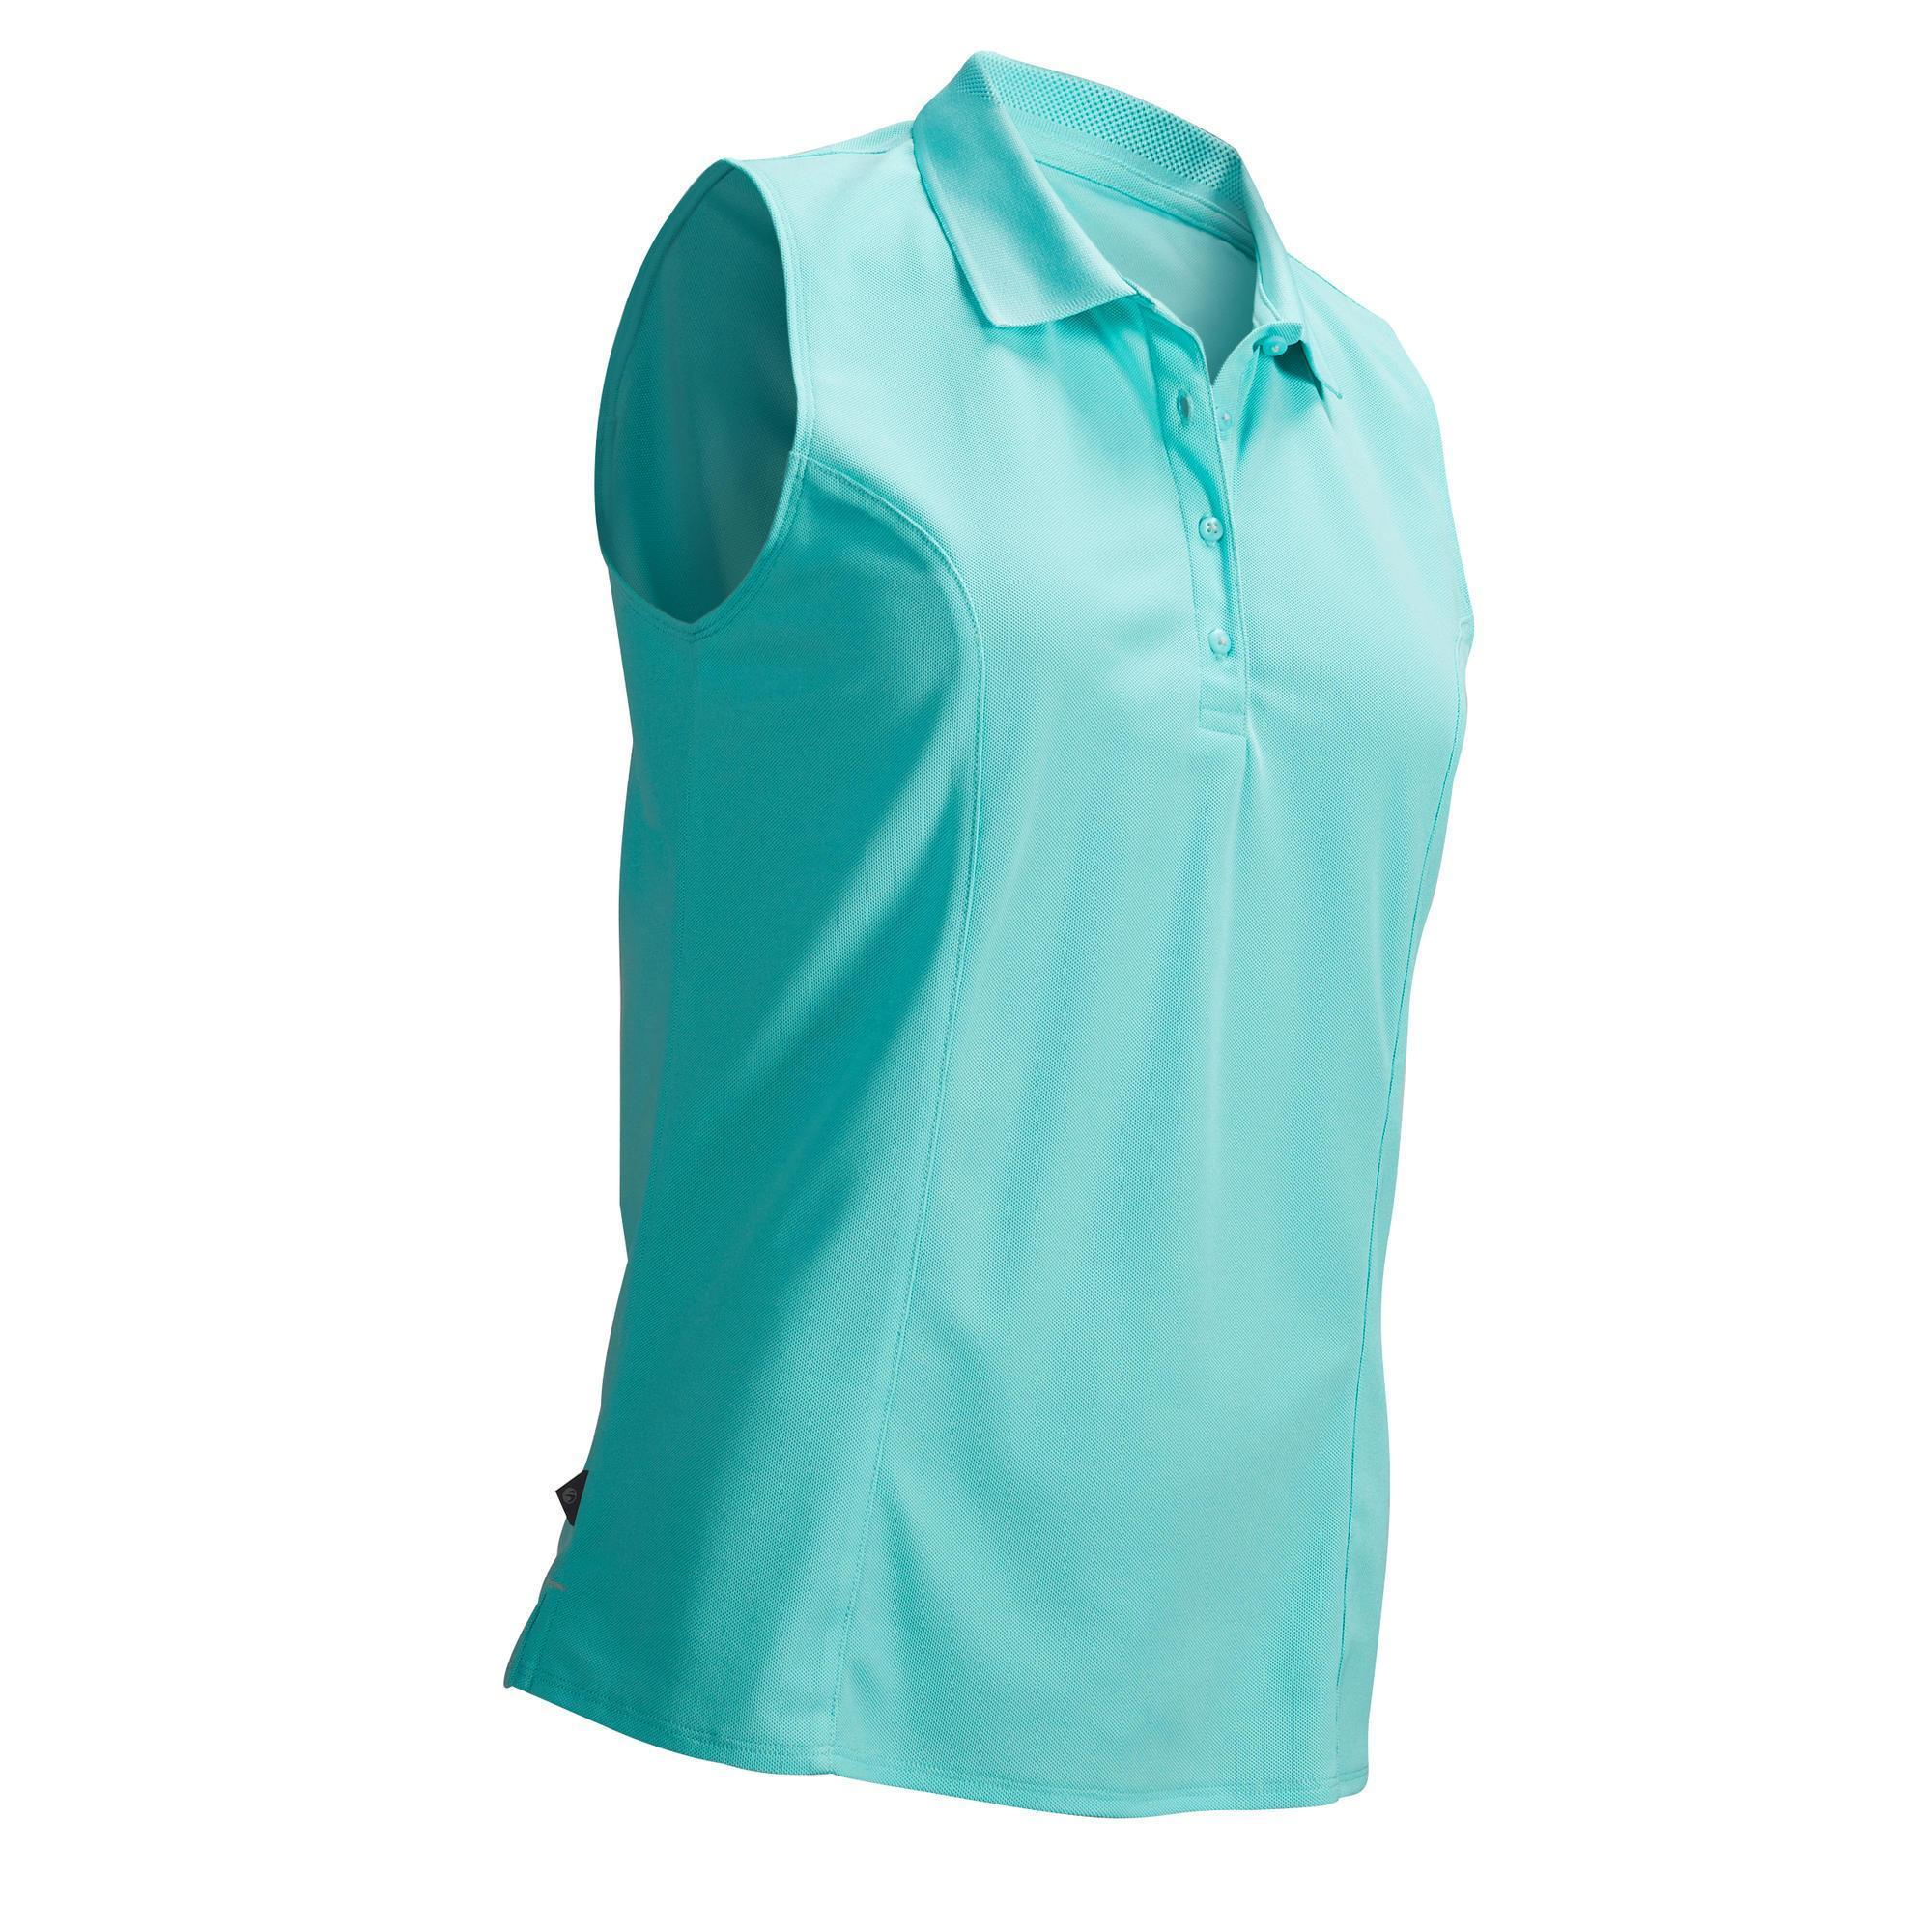 88b085ac5 LIGHT TURQUOISE WOMEN'S WARM WEATHER SLEEVELESS GOLF POLO | Inesis Golf